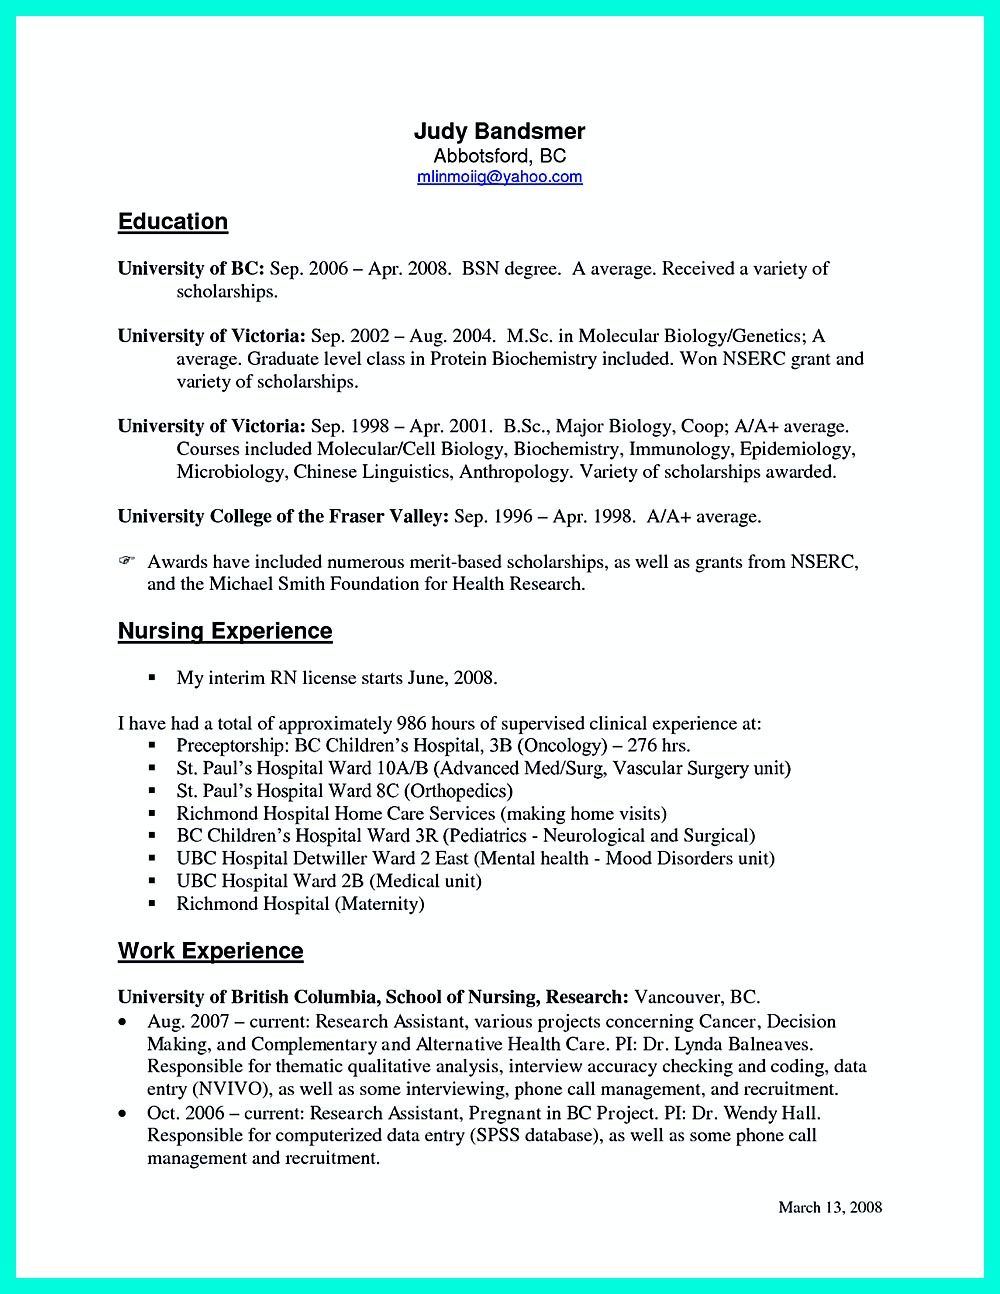 Perfect Crna Resume To Get Noticed By Company Nursing Resume Template Sample Resume Cover Letter Sample Resume